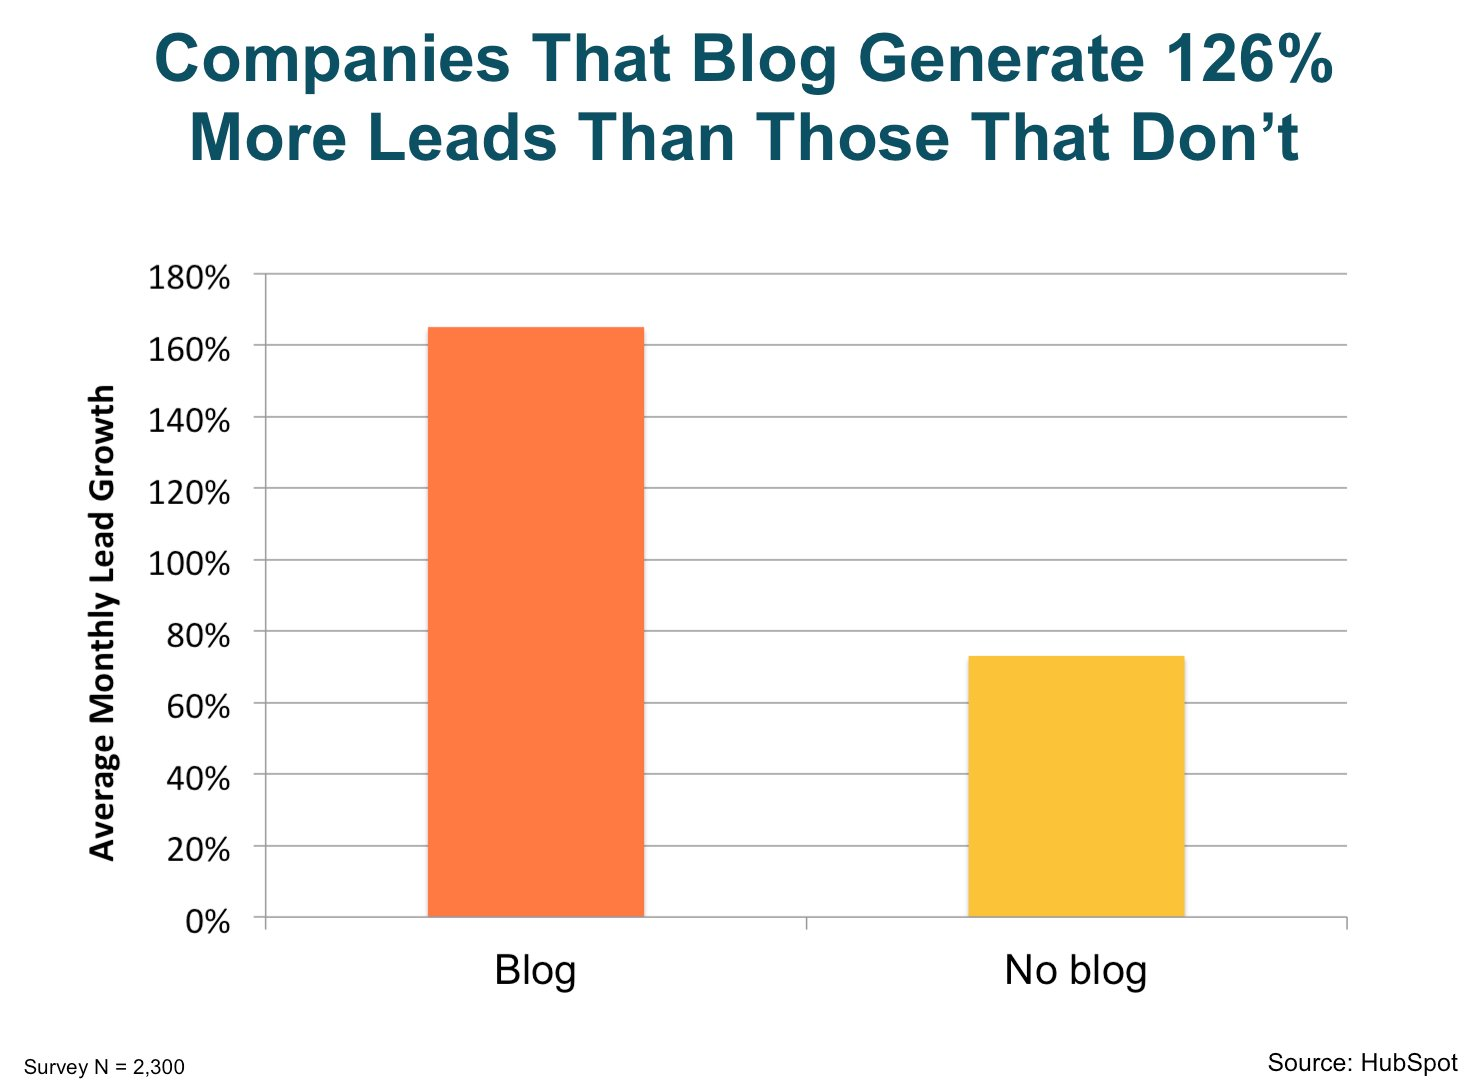 companies_that_blog_generate_126_more_leads